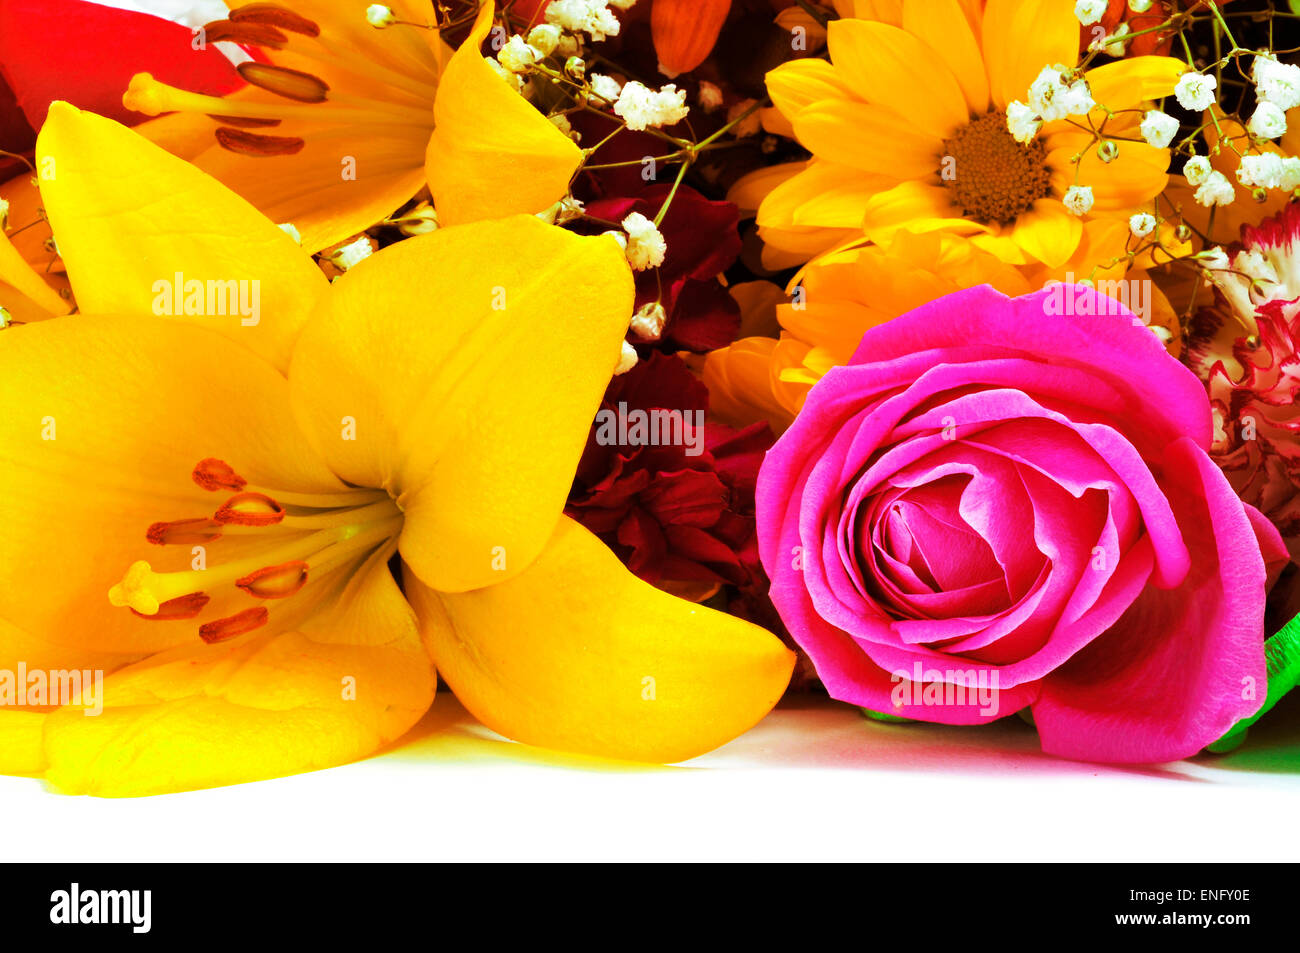 closeup of a flower bouquet with different flowers, such as roses, daisies and liliums - Stock Image